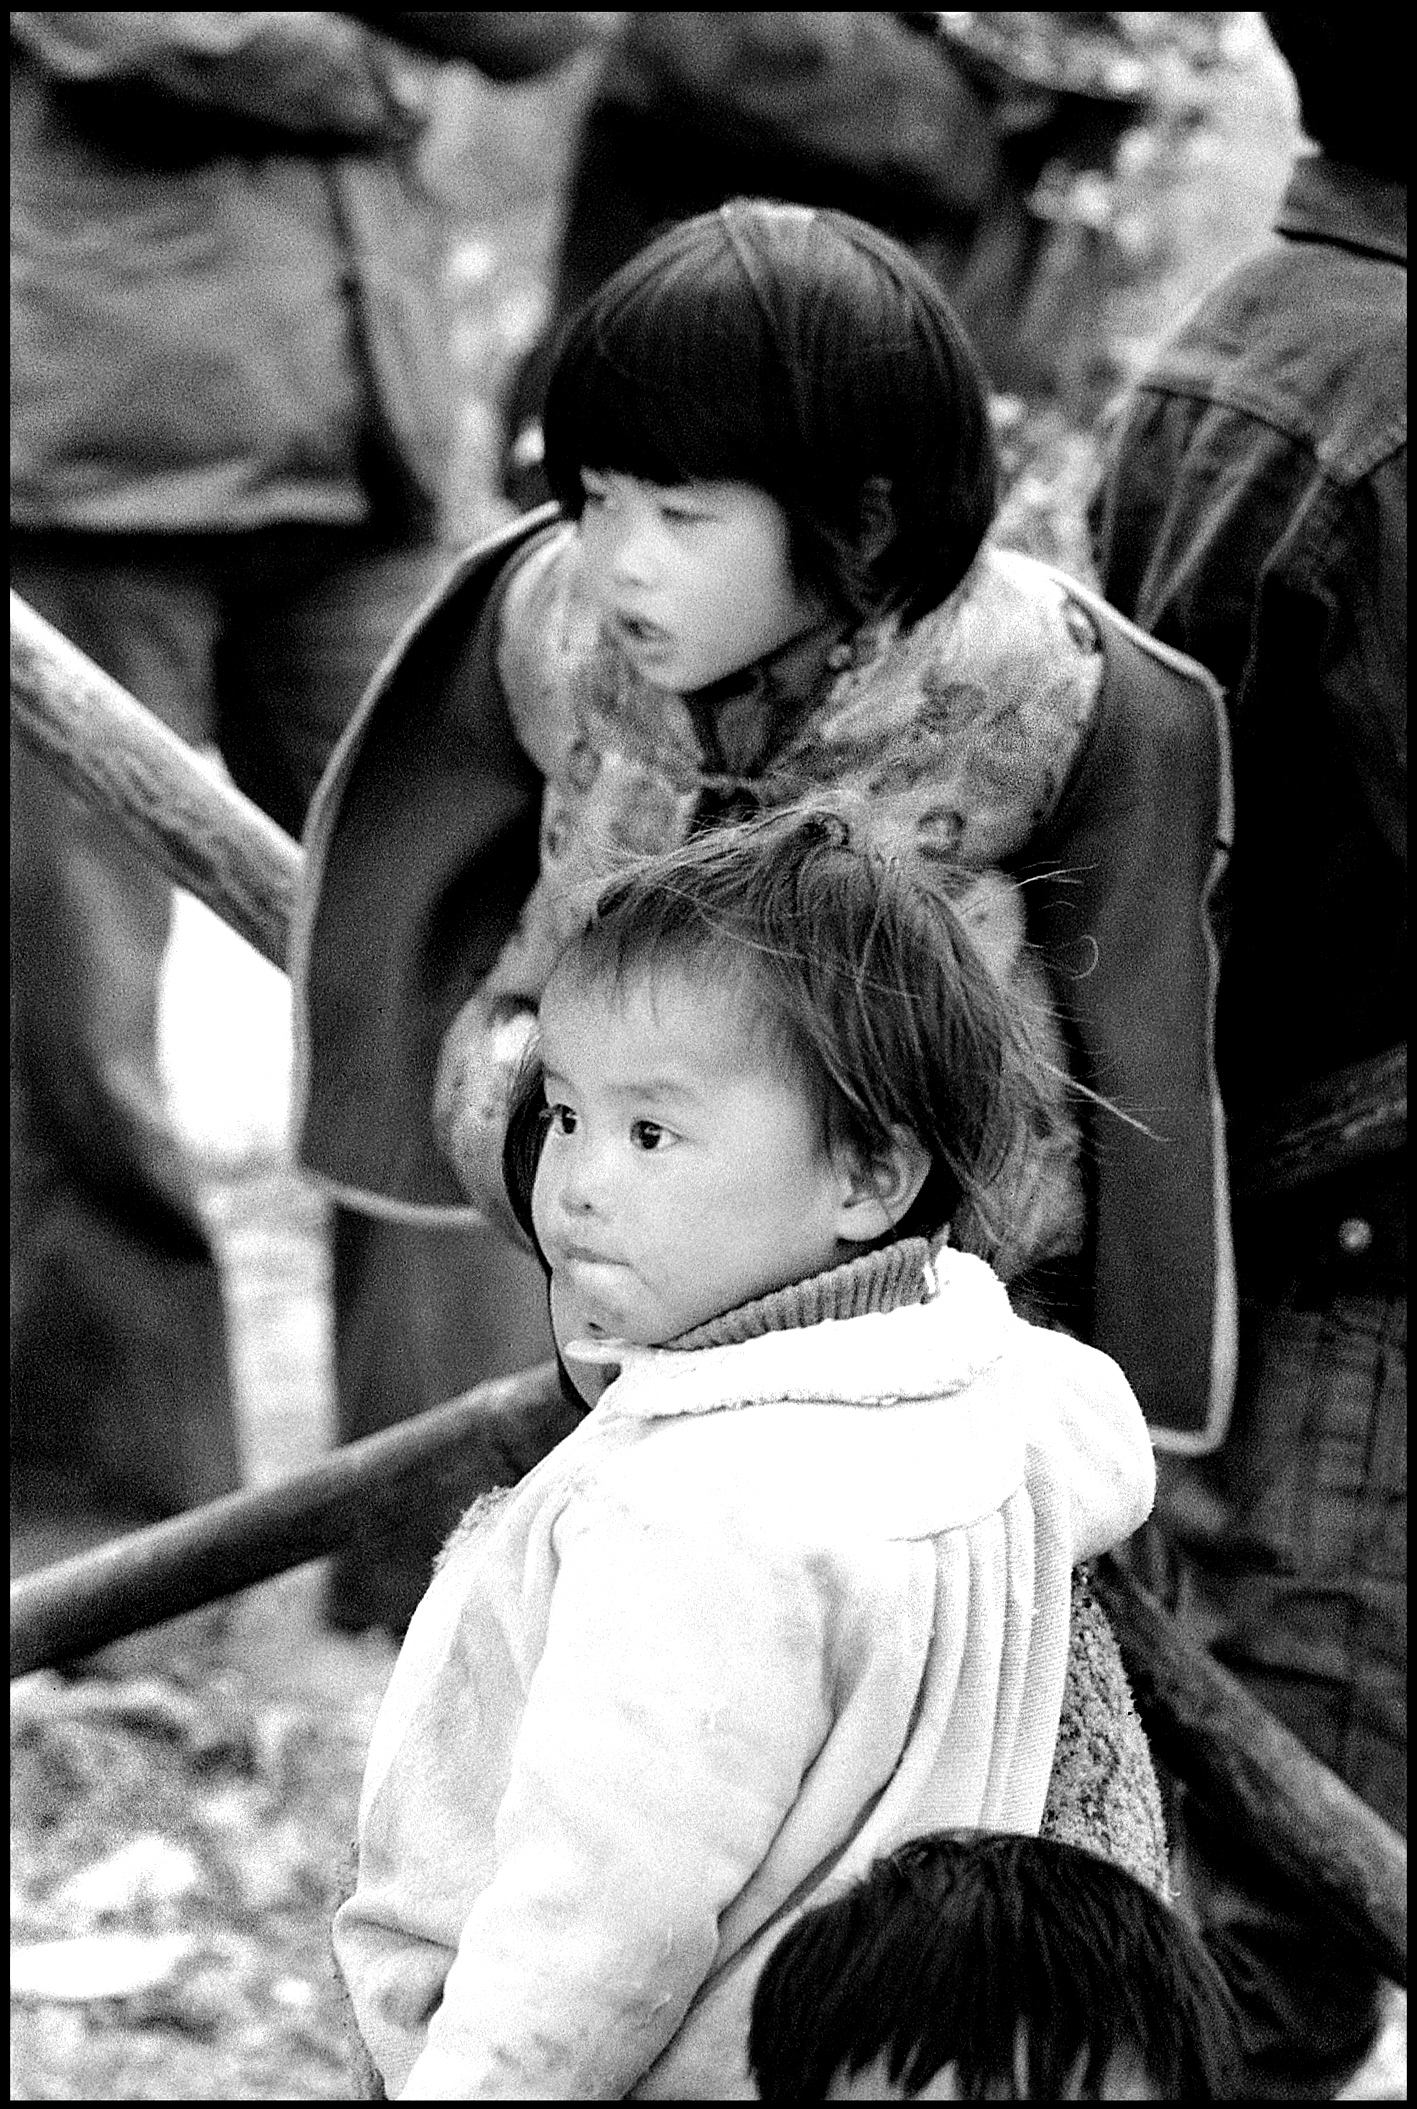 Hong Kong, New Territories   1977    Photograph by Frank Habicht